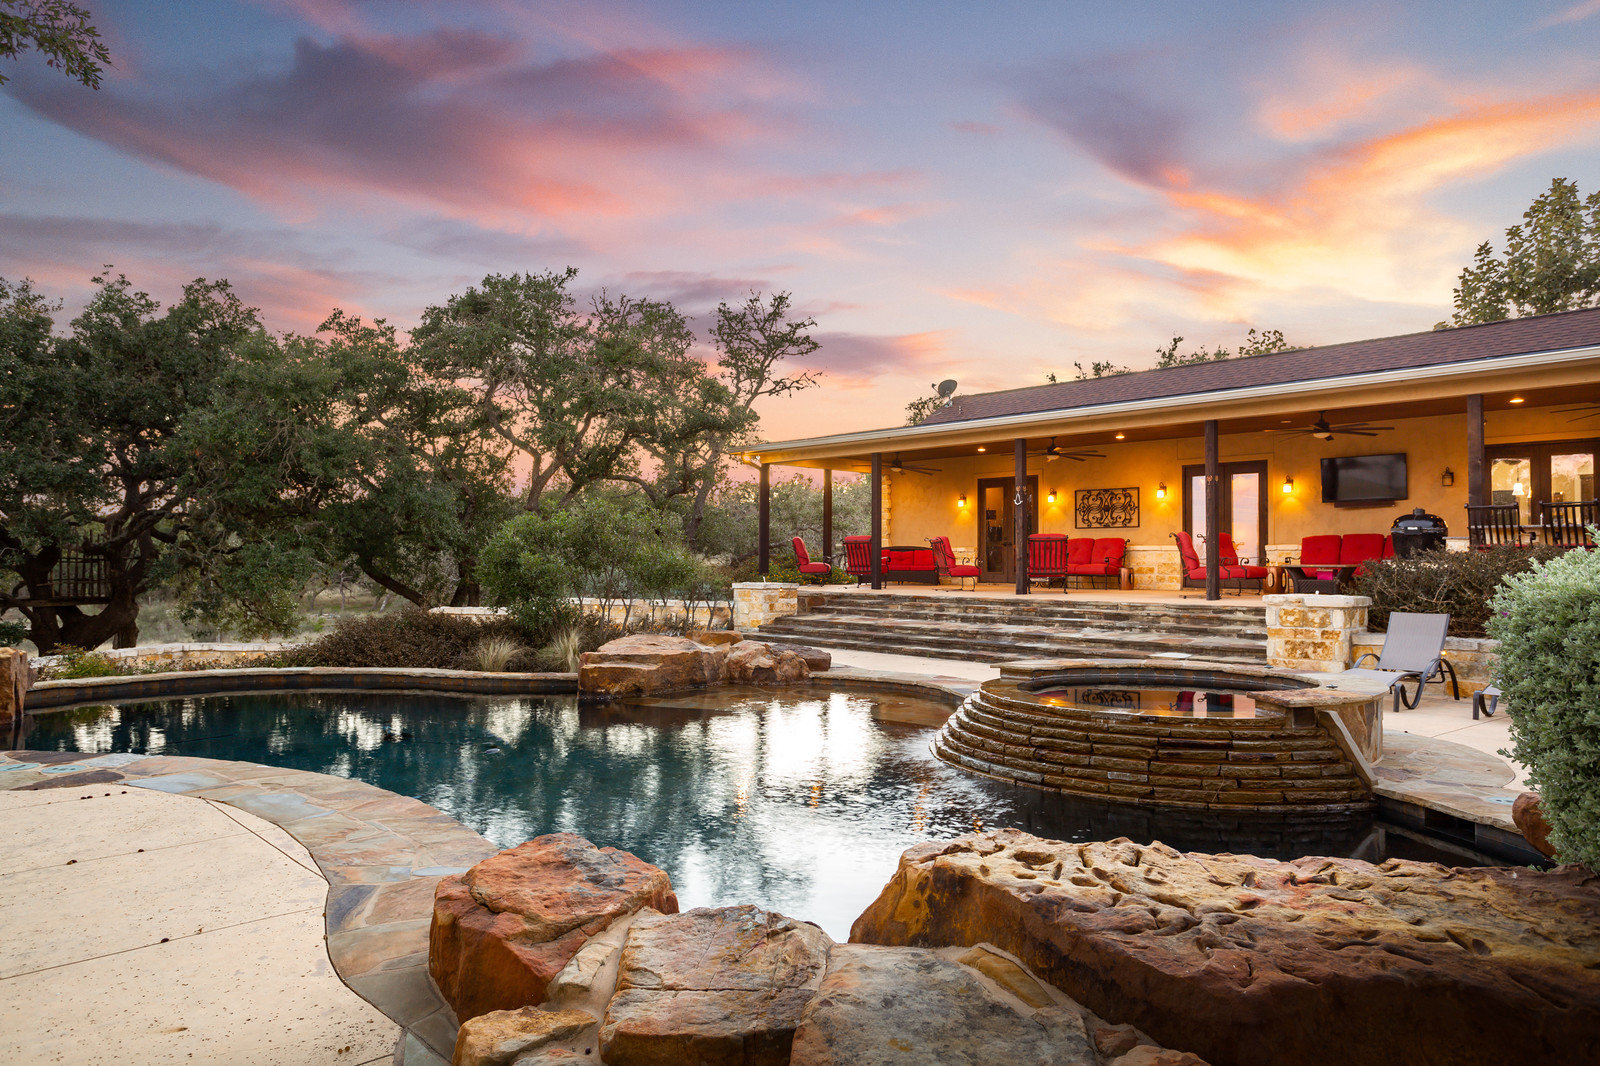 Luxurious outdoor living and pool space in the Texas hill country near Boerne, Texas